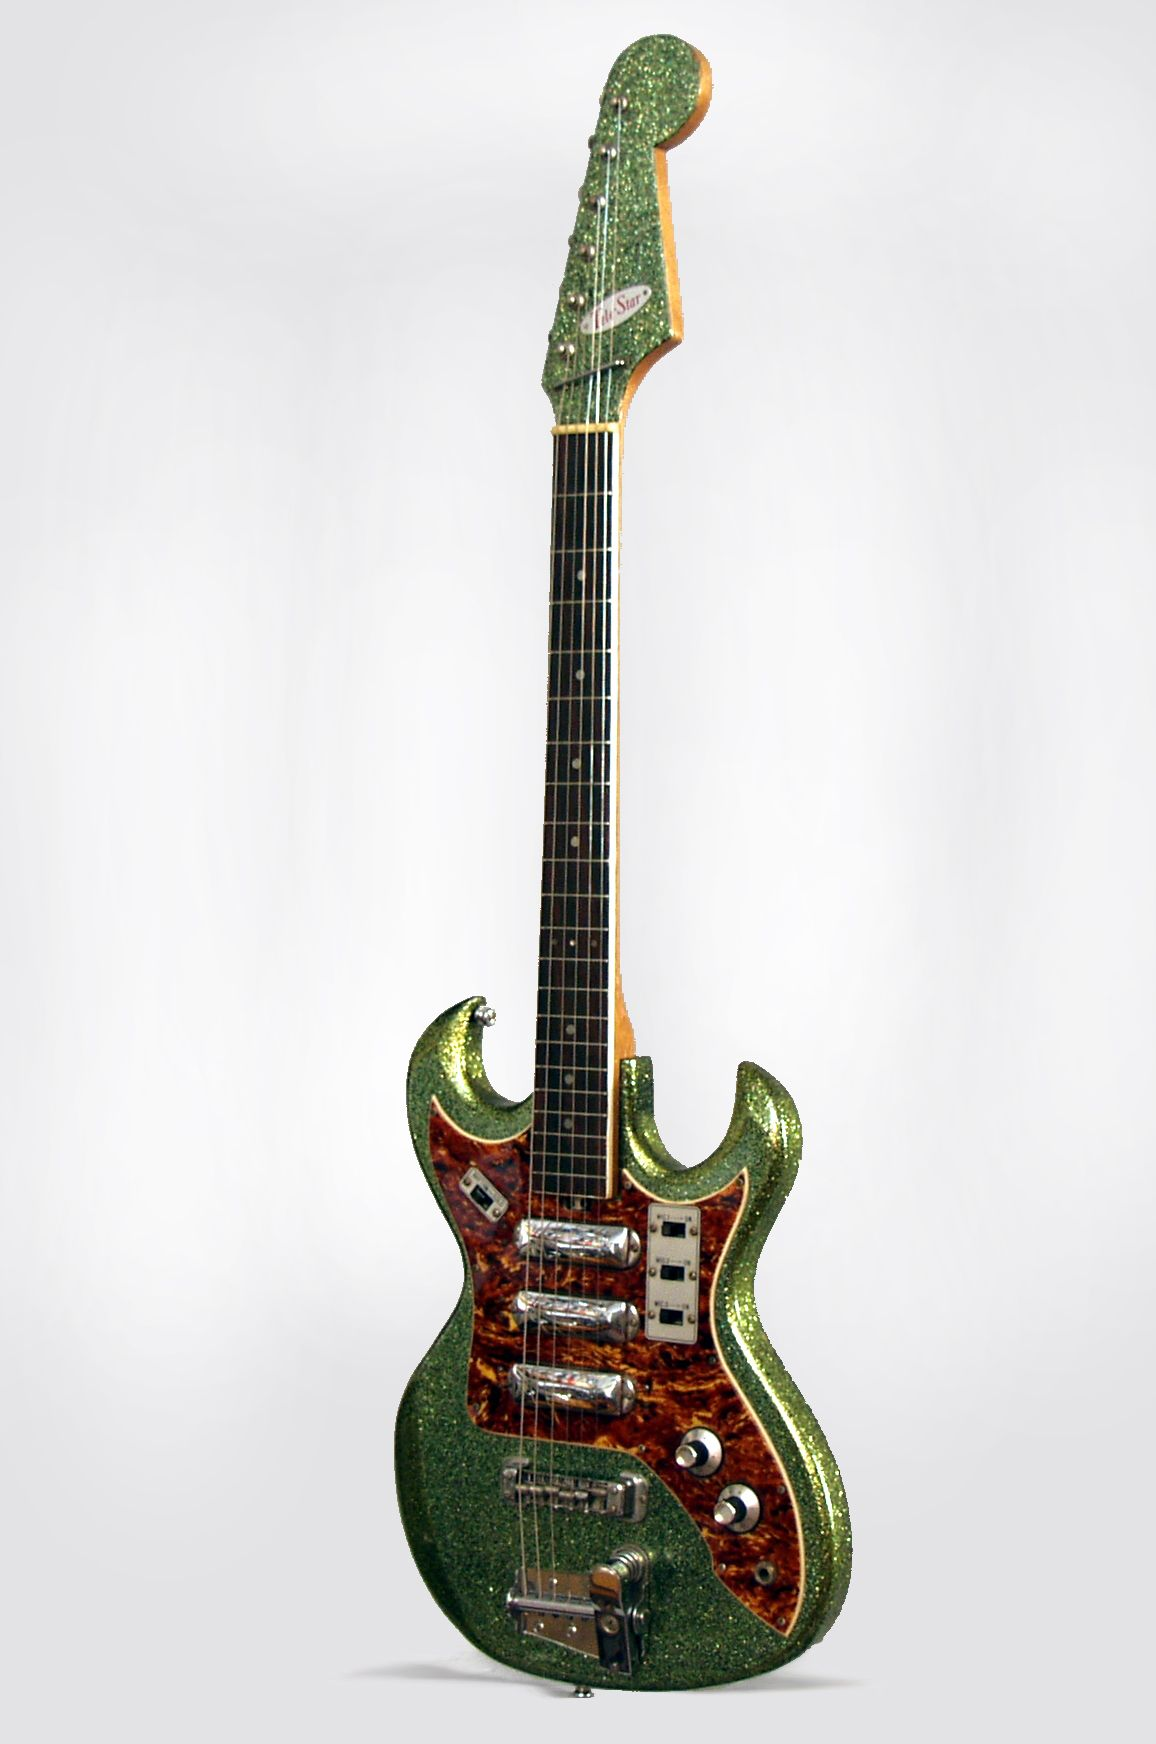 small resolution of tele star model solid body electric guitar most likely made by teisco c 1964 made in japan green sparkle finish